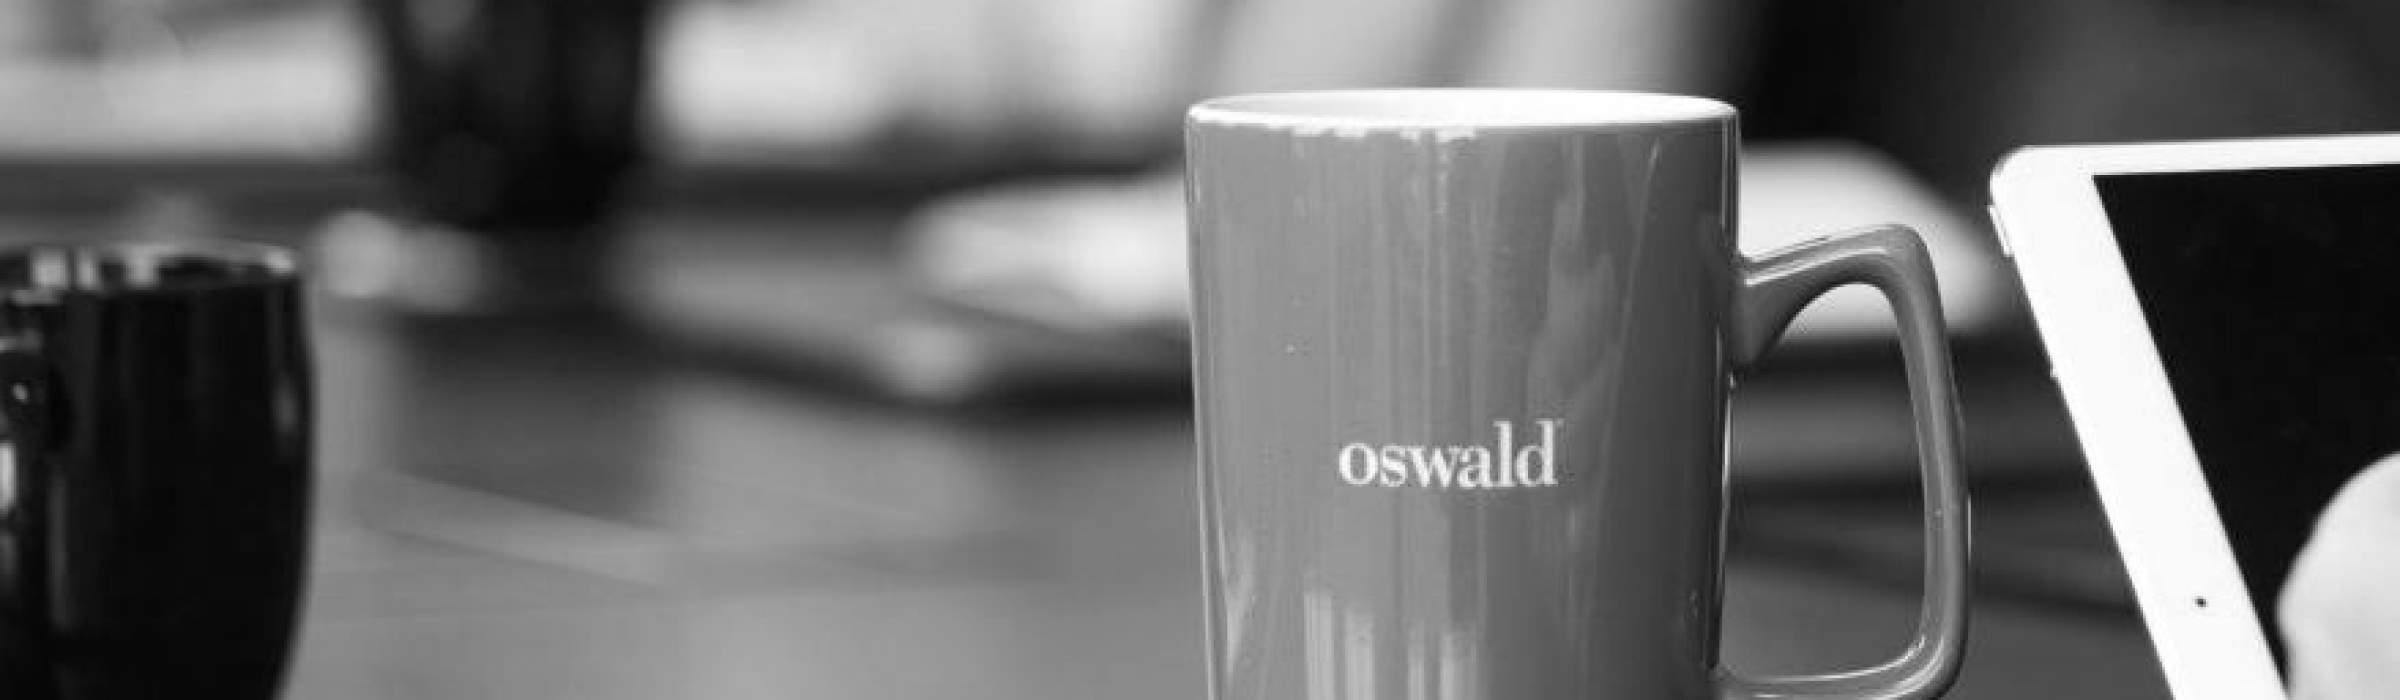 Red Oswald coffee mug on a conference table